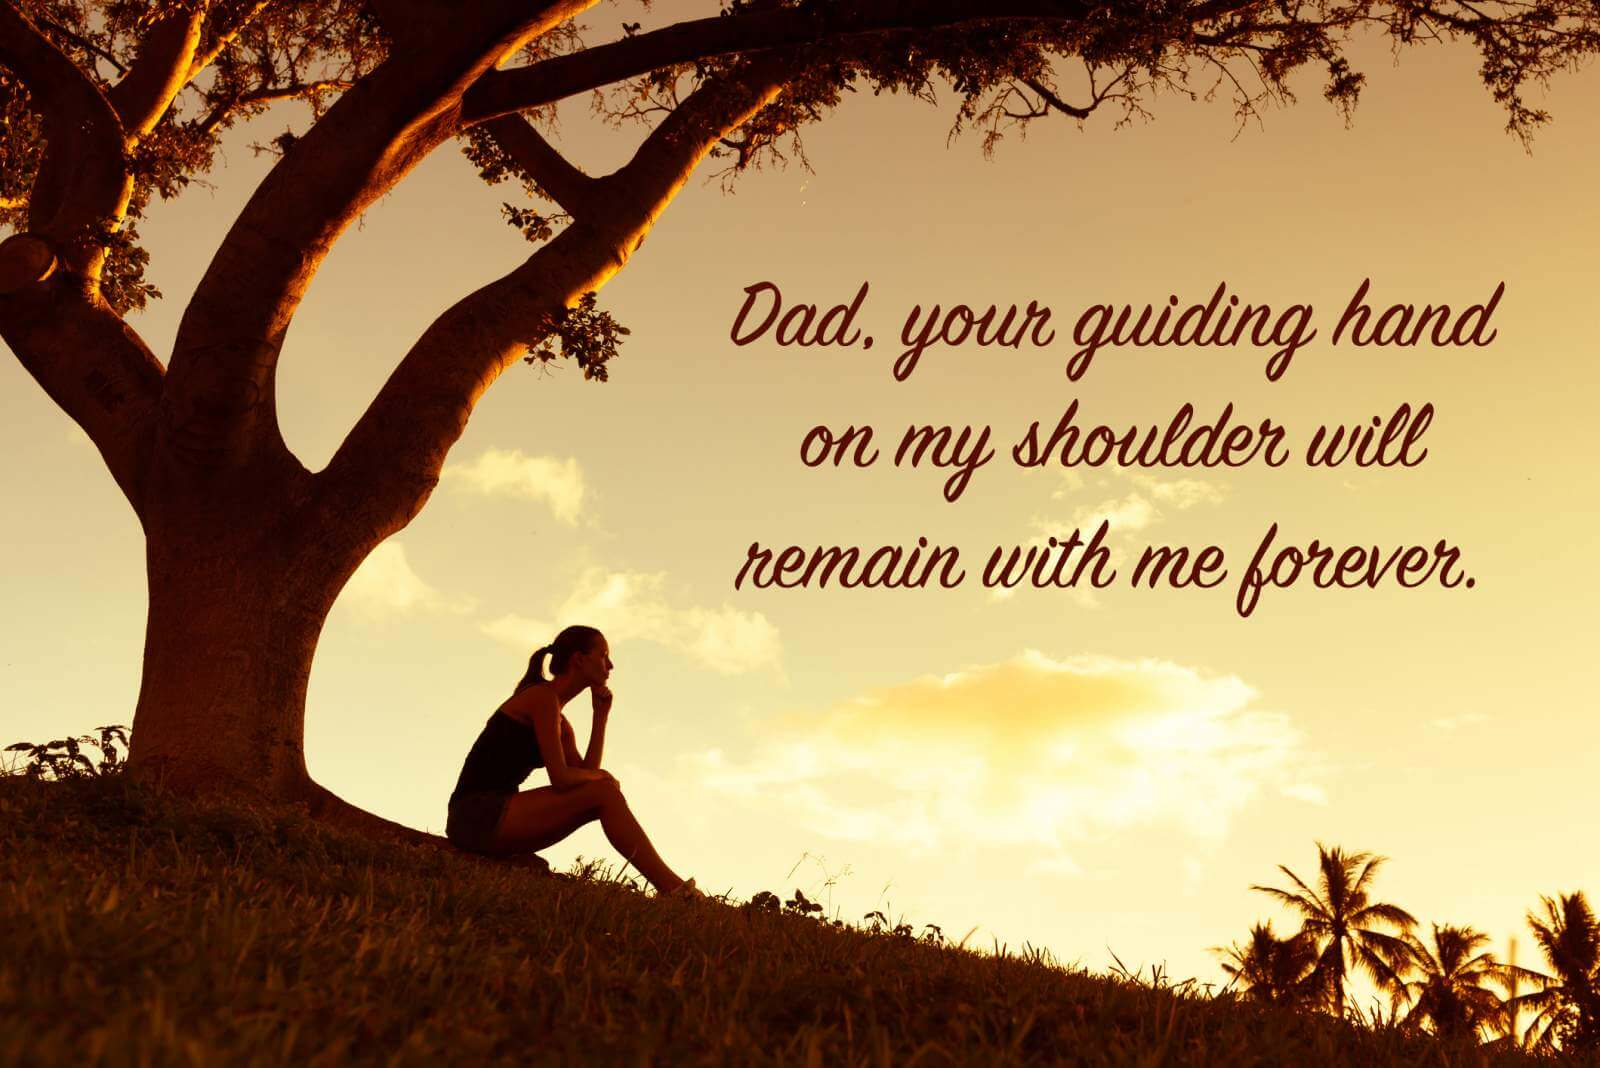 sad daughter under a tree with a miss you dad quote overlay